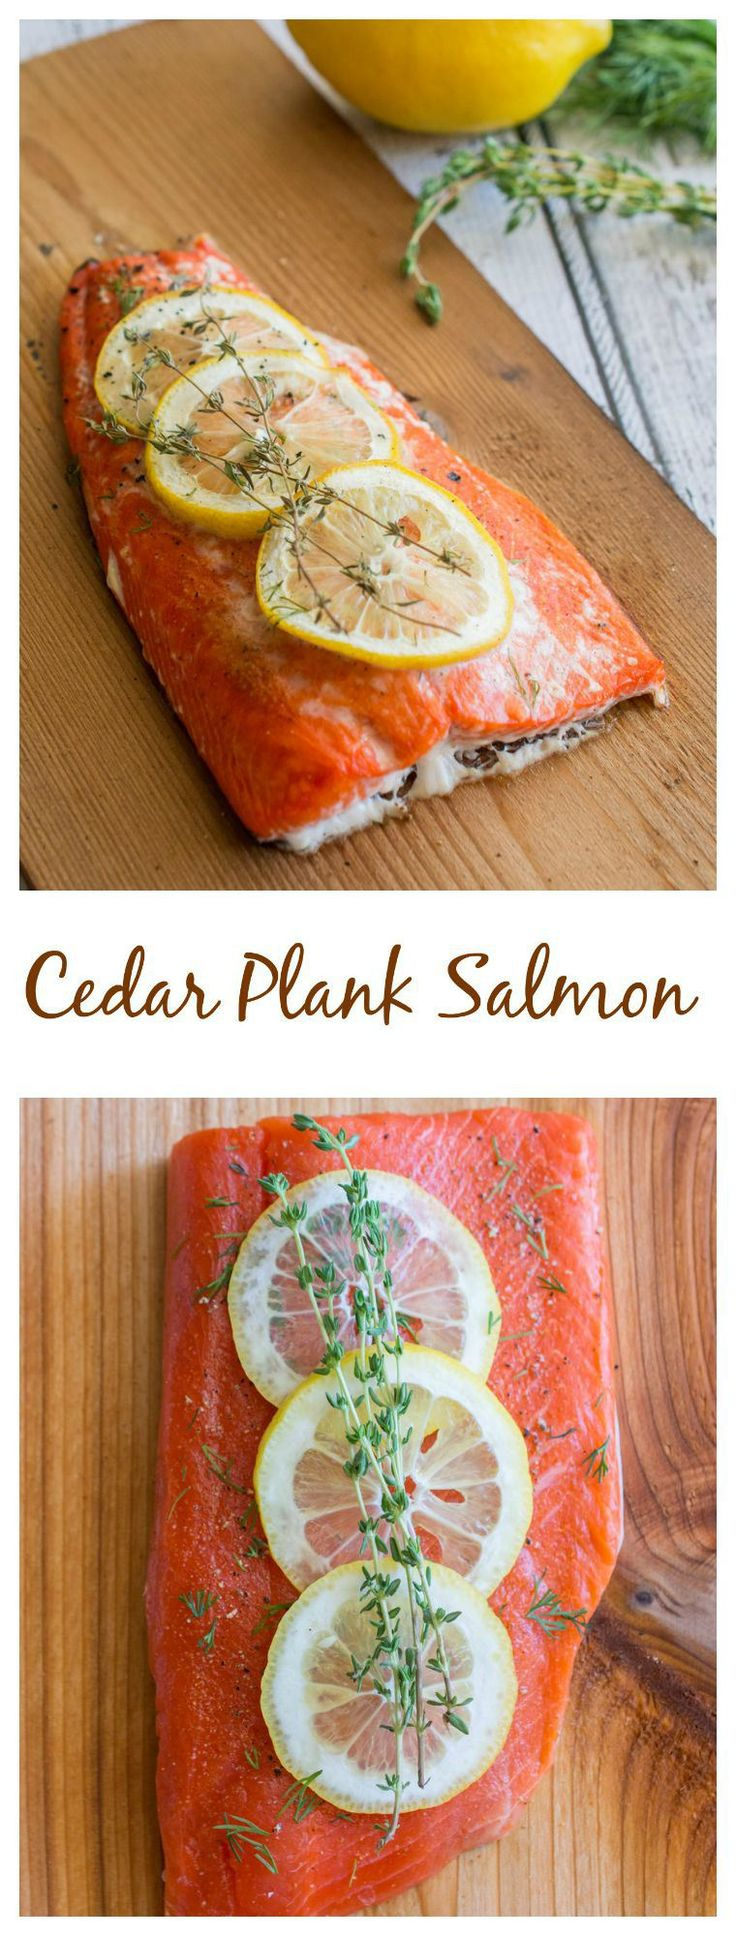 Cedar gives seafood such a great flavor. Click on my page to learn how to make Cedar Plank Salmon! Bonus tip: Soaking a cedar plank in beer or white wine gives it an even better flavor!